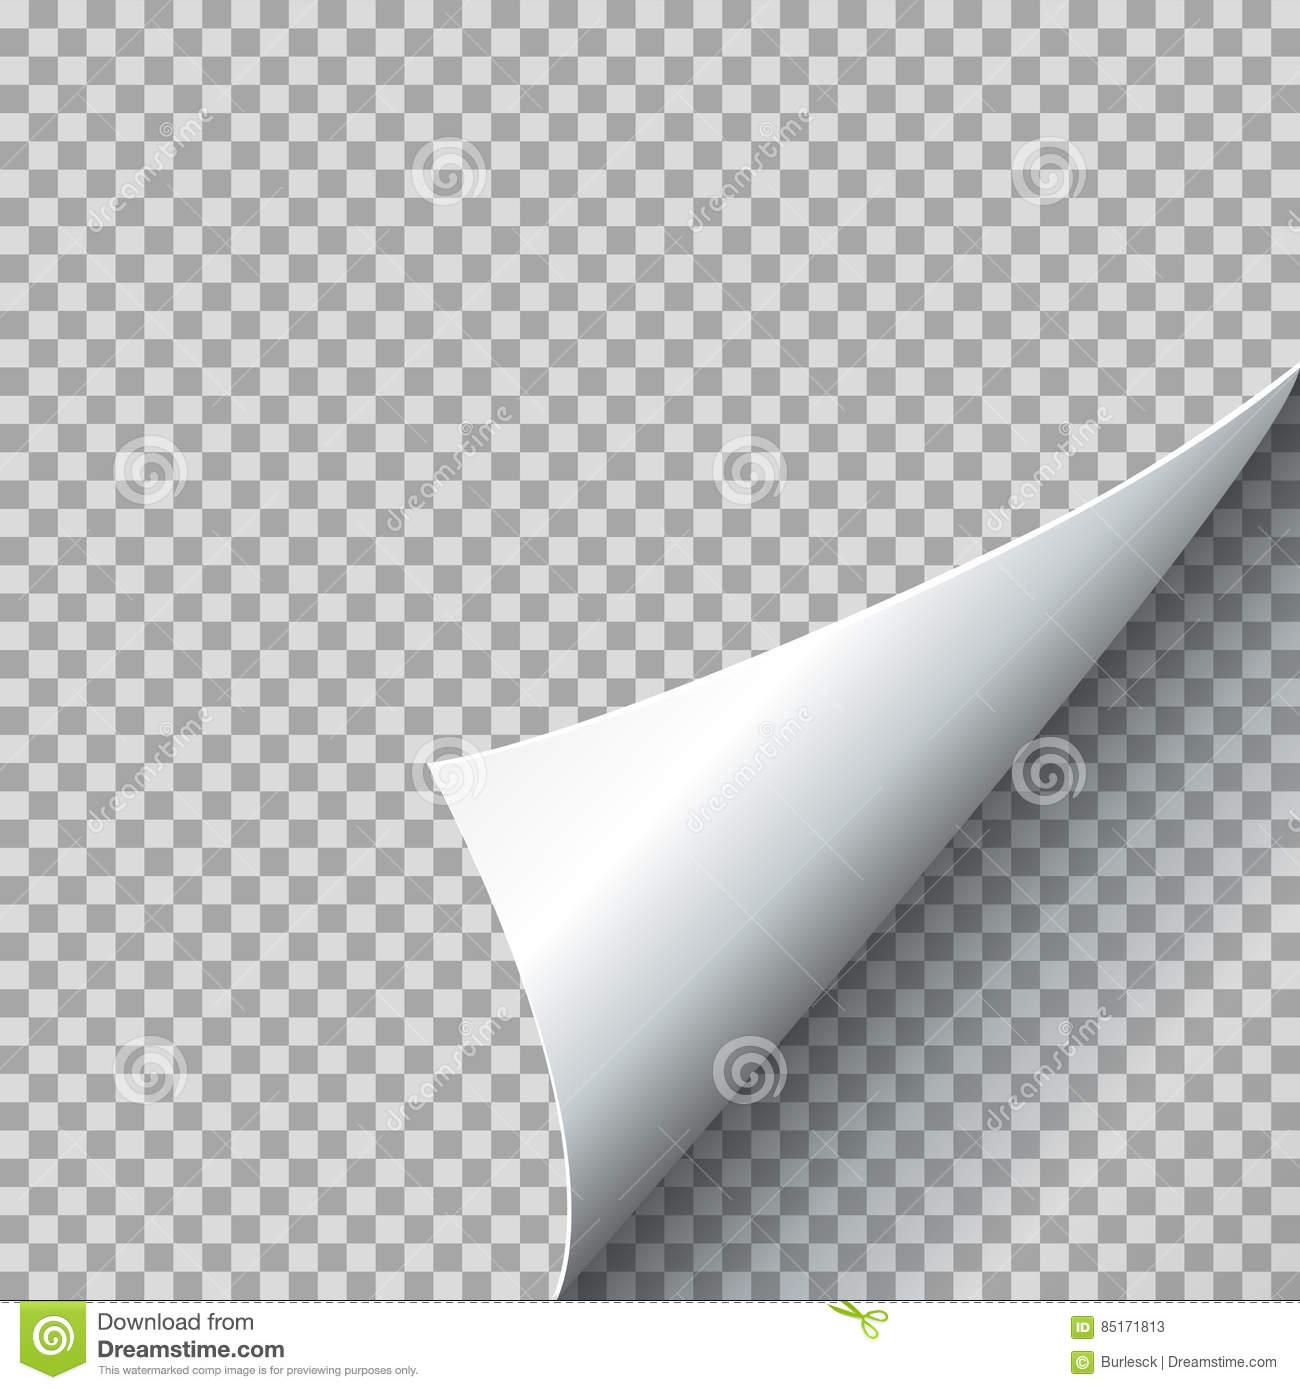 Paper curl vector illustration. Curled page corner with shadow on transparent background